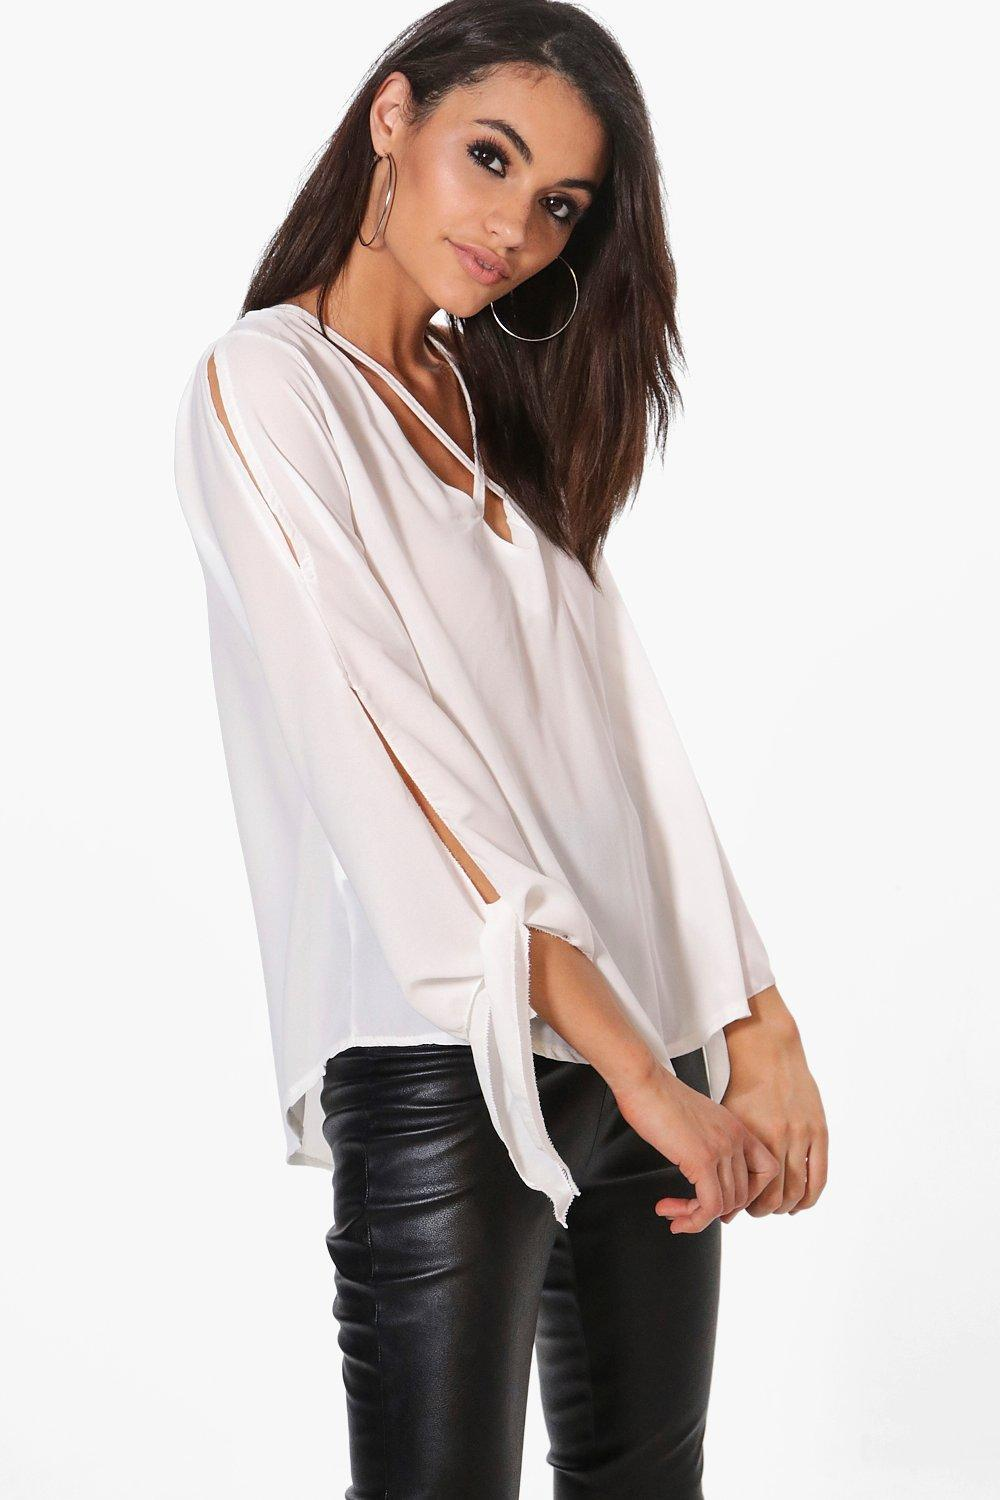 8b918c1283d4e Boohoo Esme Tie Strap Detail Woven Blouse in White - Lyst